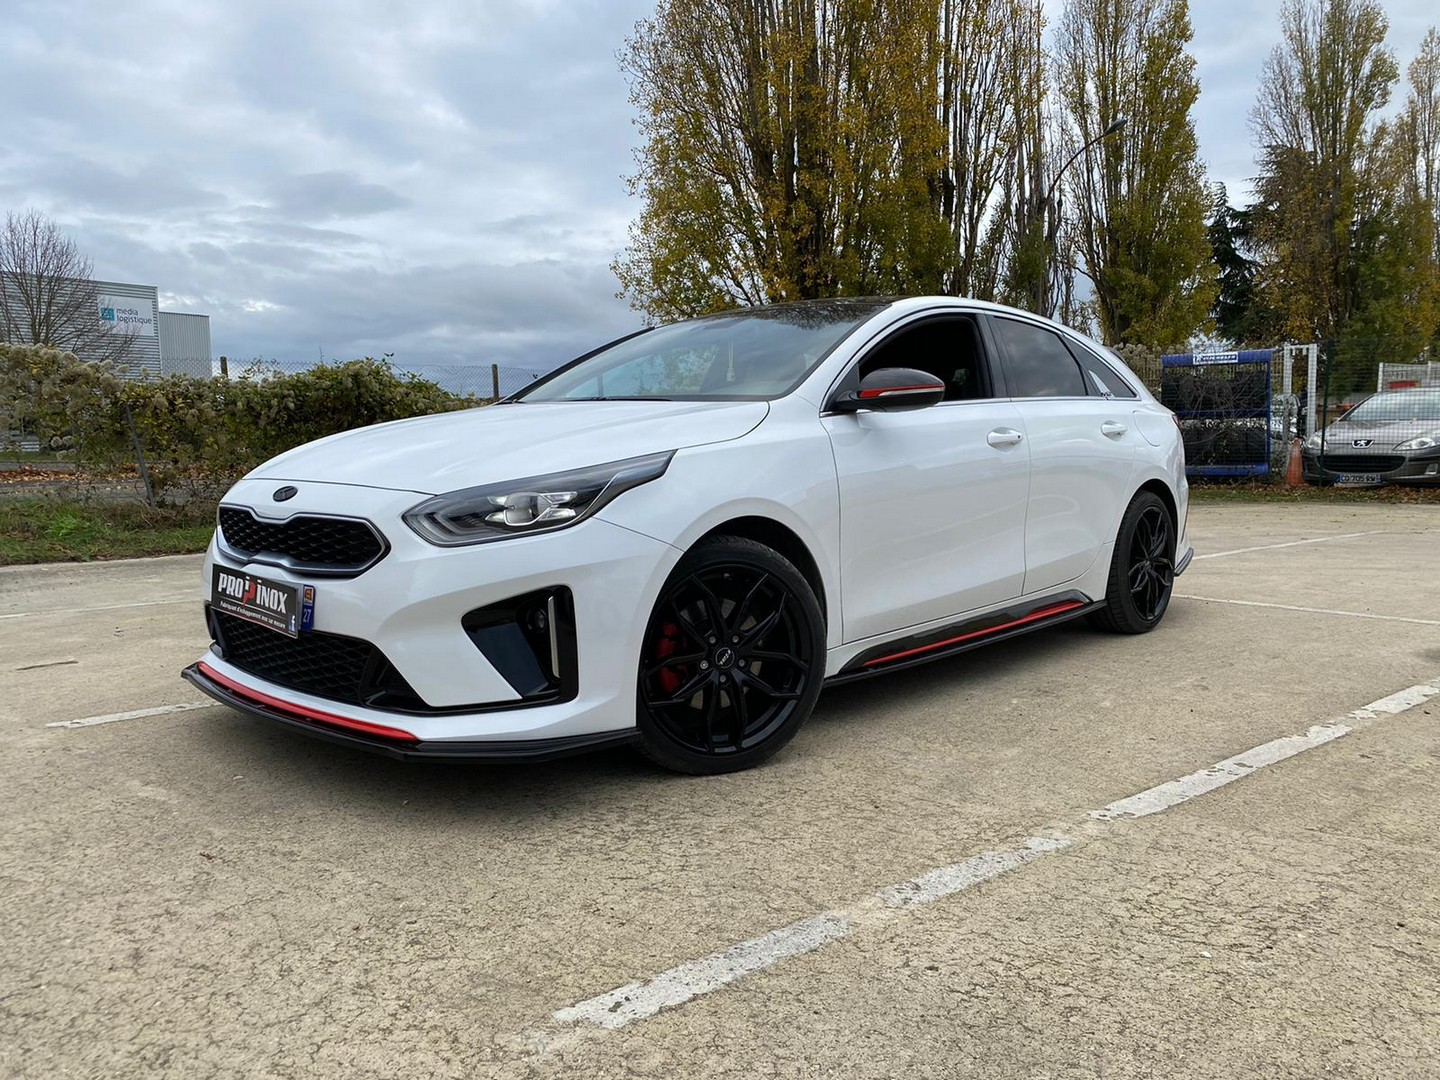 Proinox28 - Échappement inox Kia Proceed 1.4 Turbo